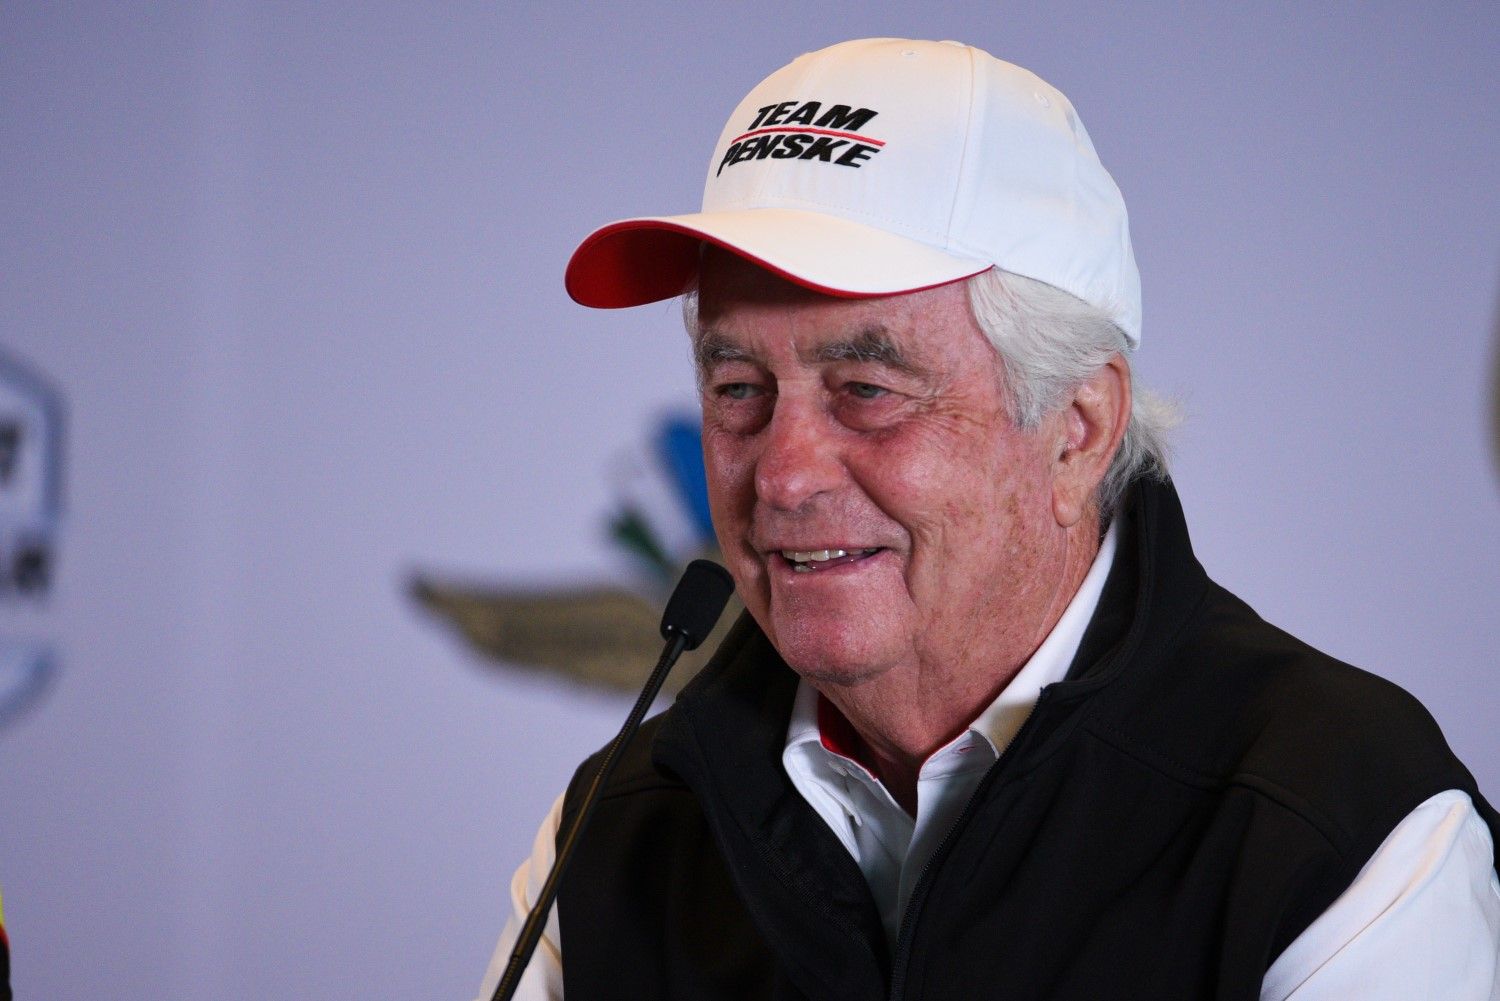 Penske wants to ensure IMS is the 'Augusta' of all racing facilities